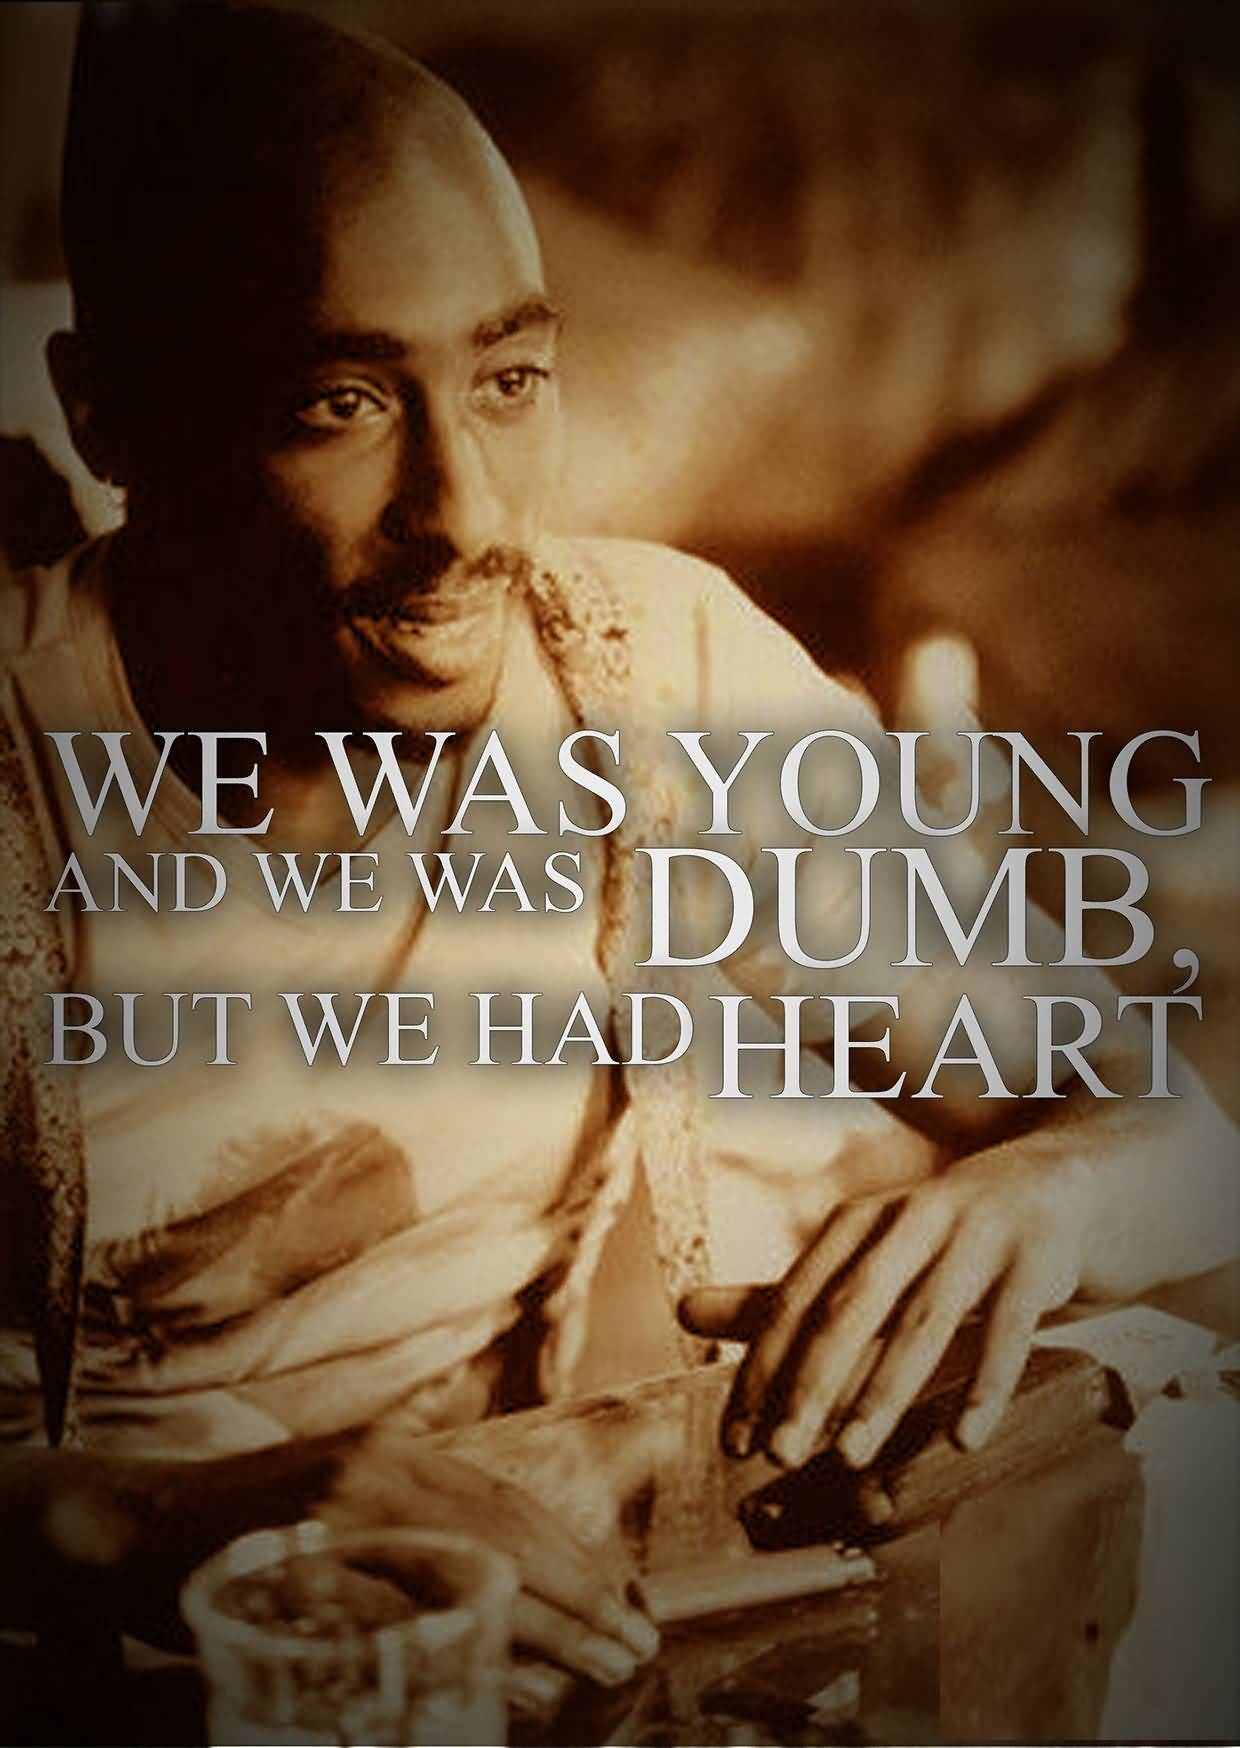 Nigga Quotes We was young and we was dumb but we had heart